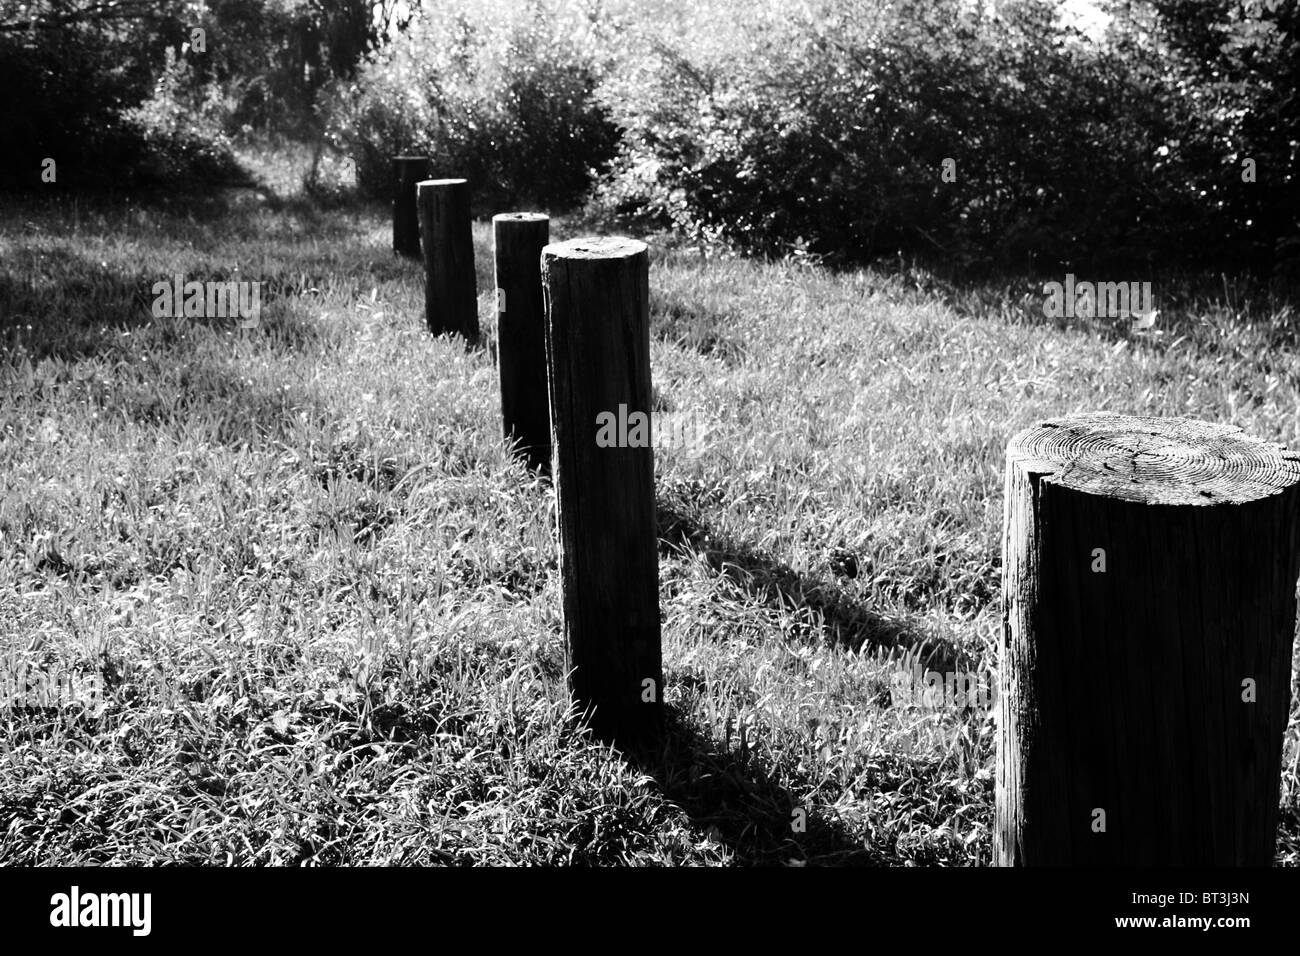 A line of wooden stumps in a secluded woodland area - Stock Image